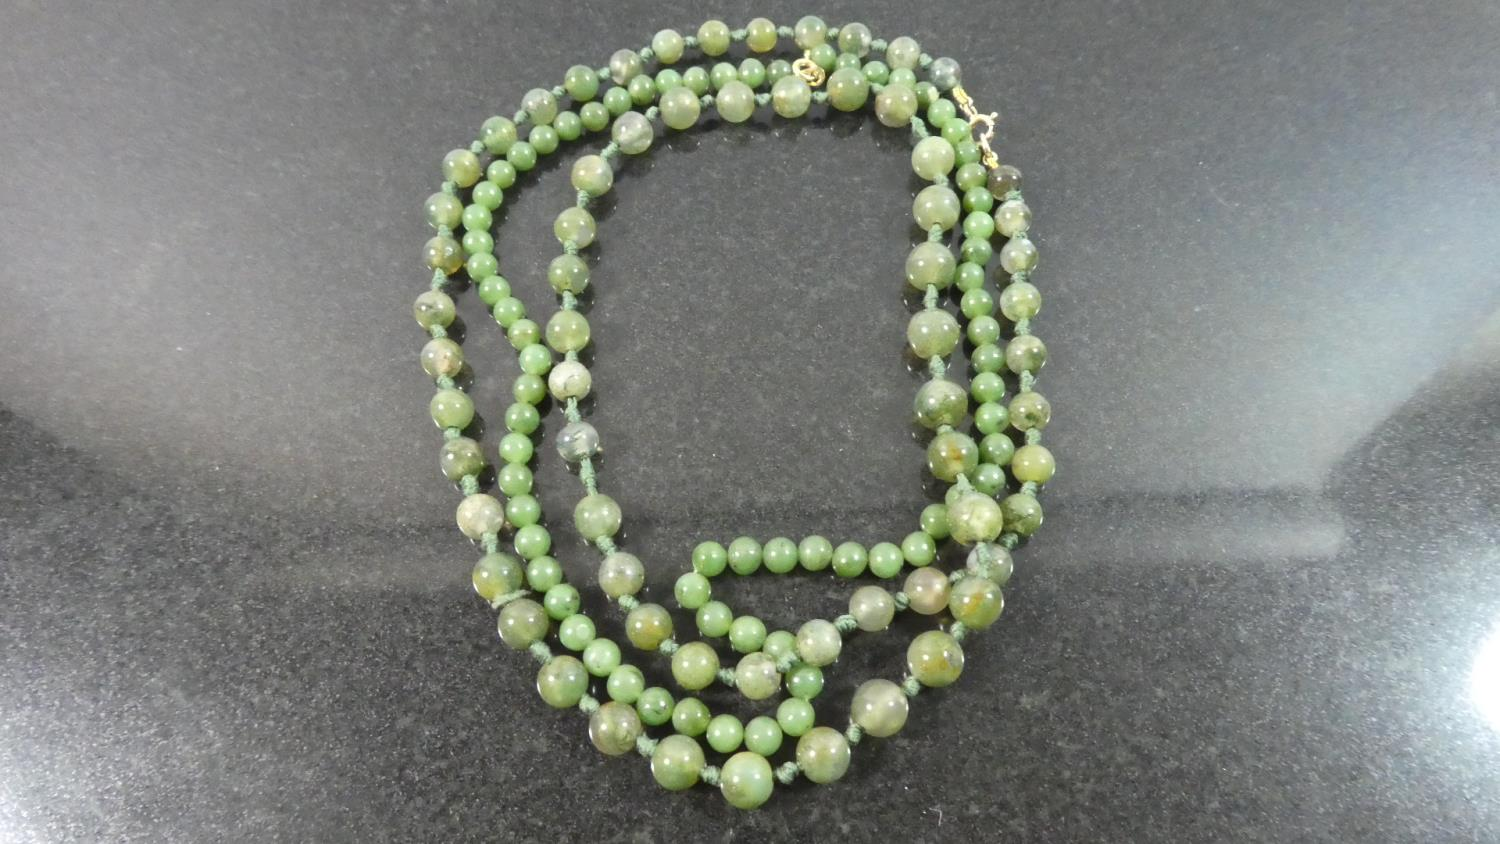 Lot 409 - A Moss Agate Necklace with 9ct Gold Clasp and a Jade Bead Necklace